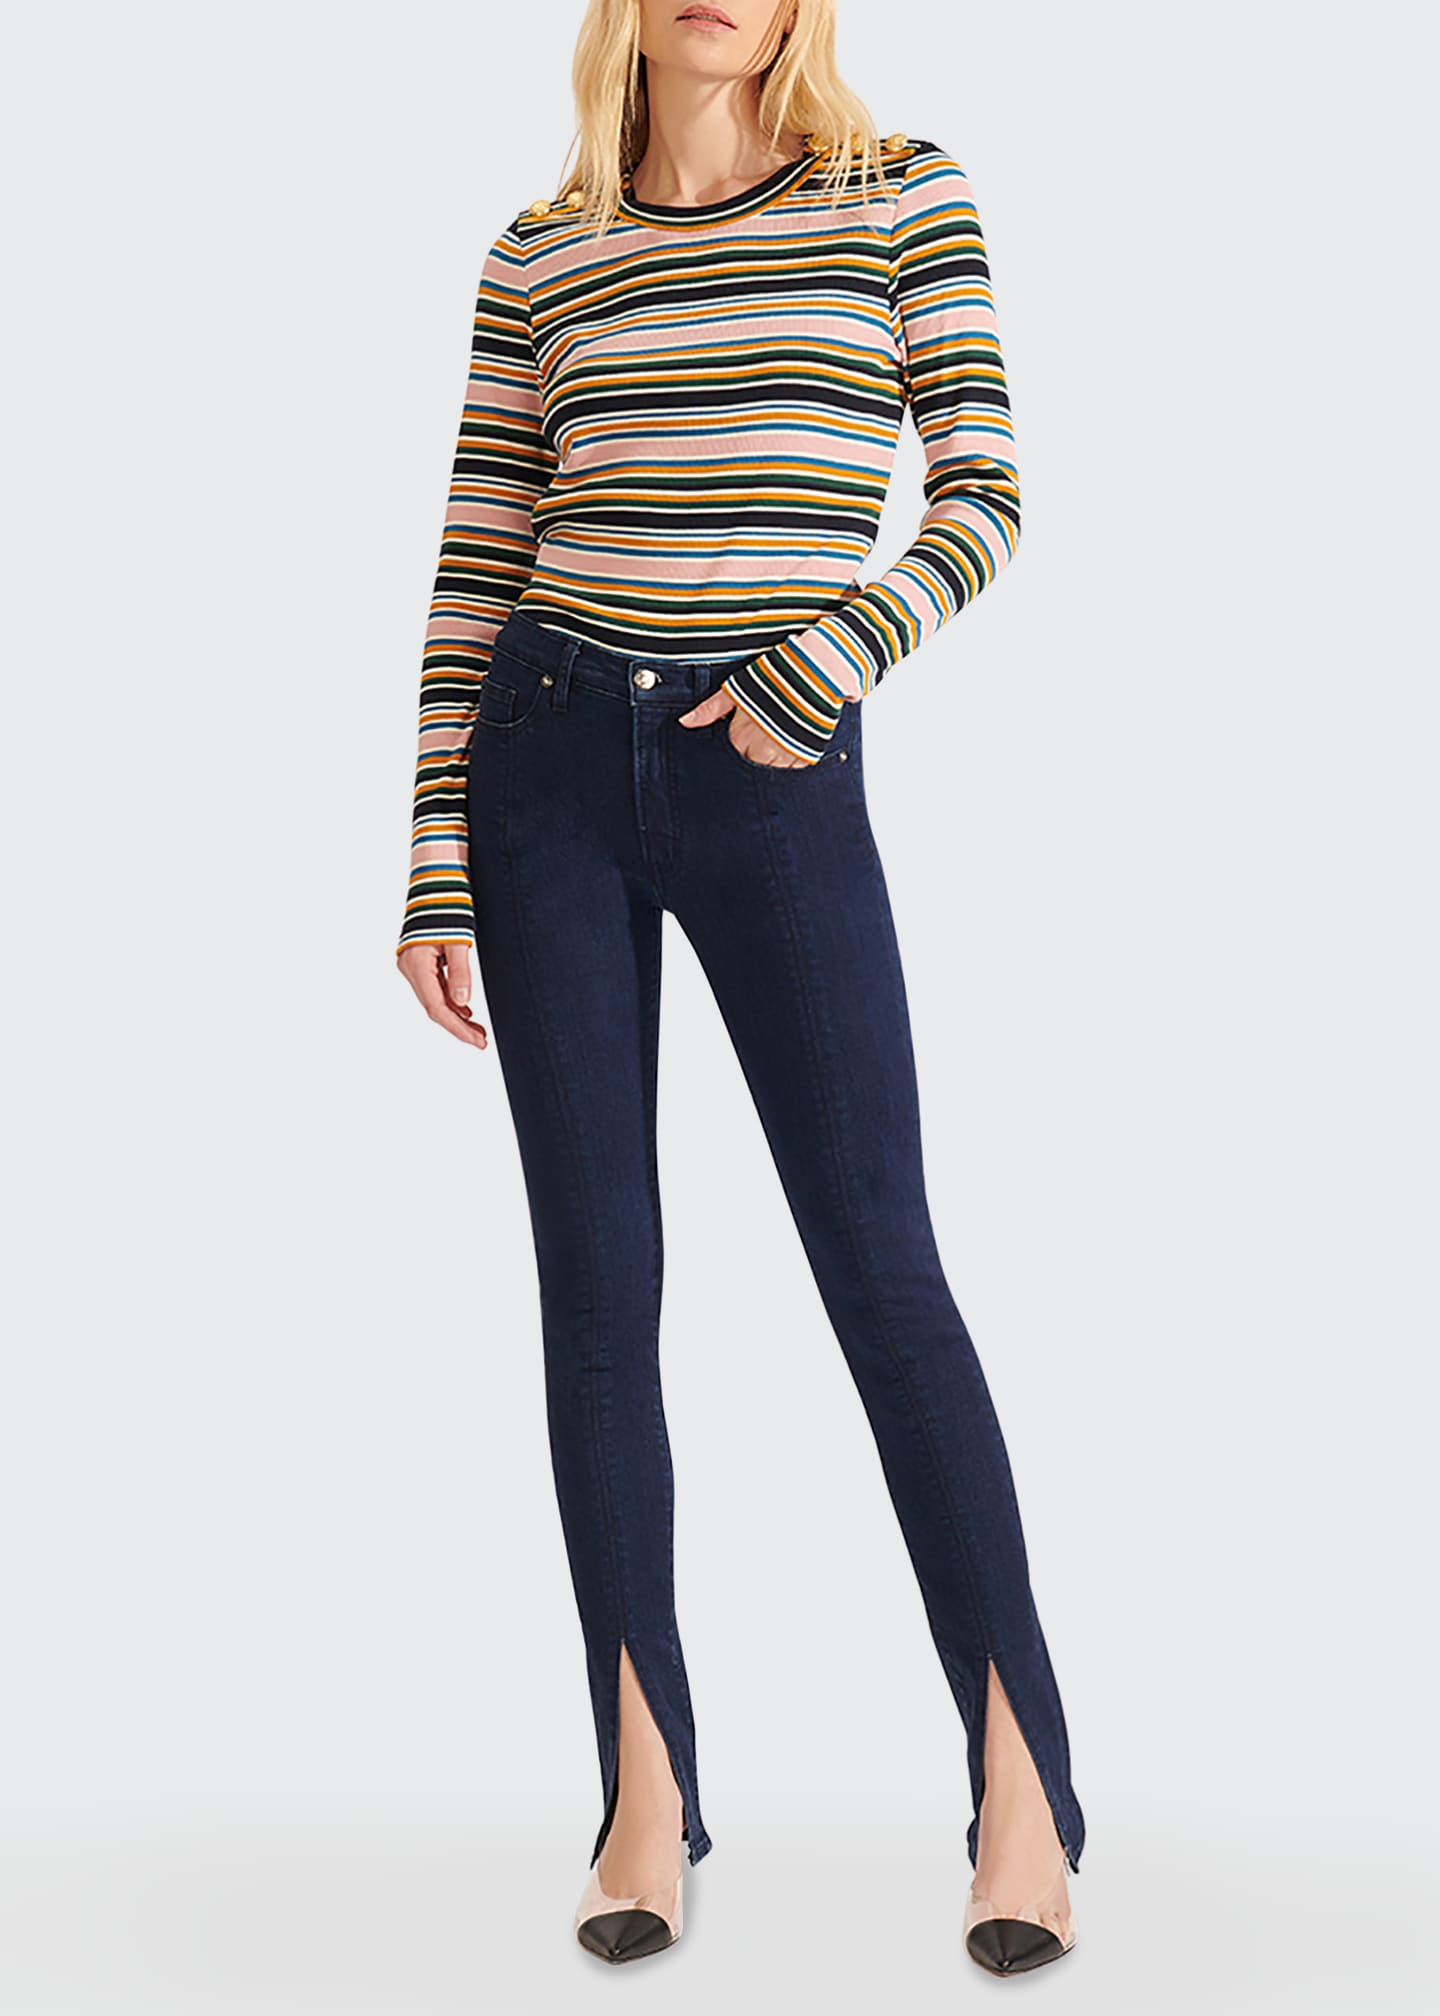 Image 1 of 4: Mayer Striped Long-Sleeve Top with Buttons